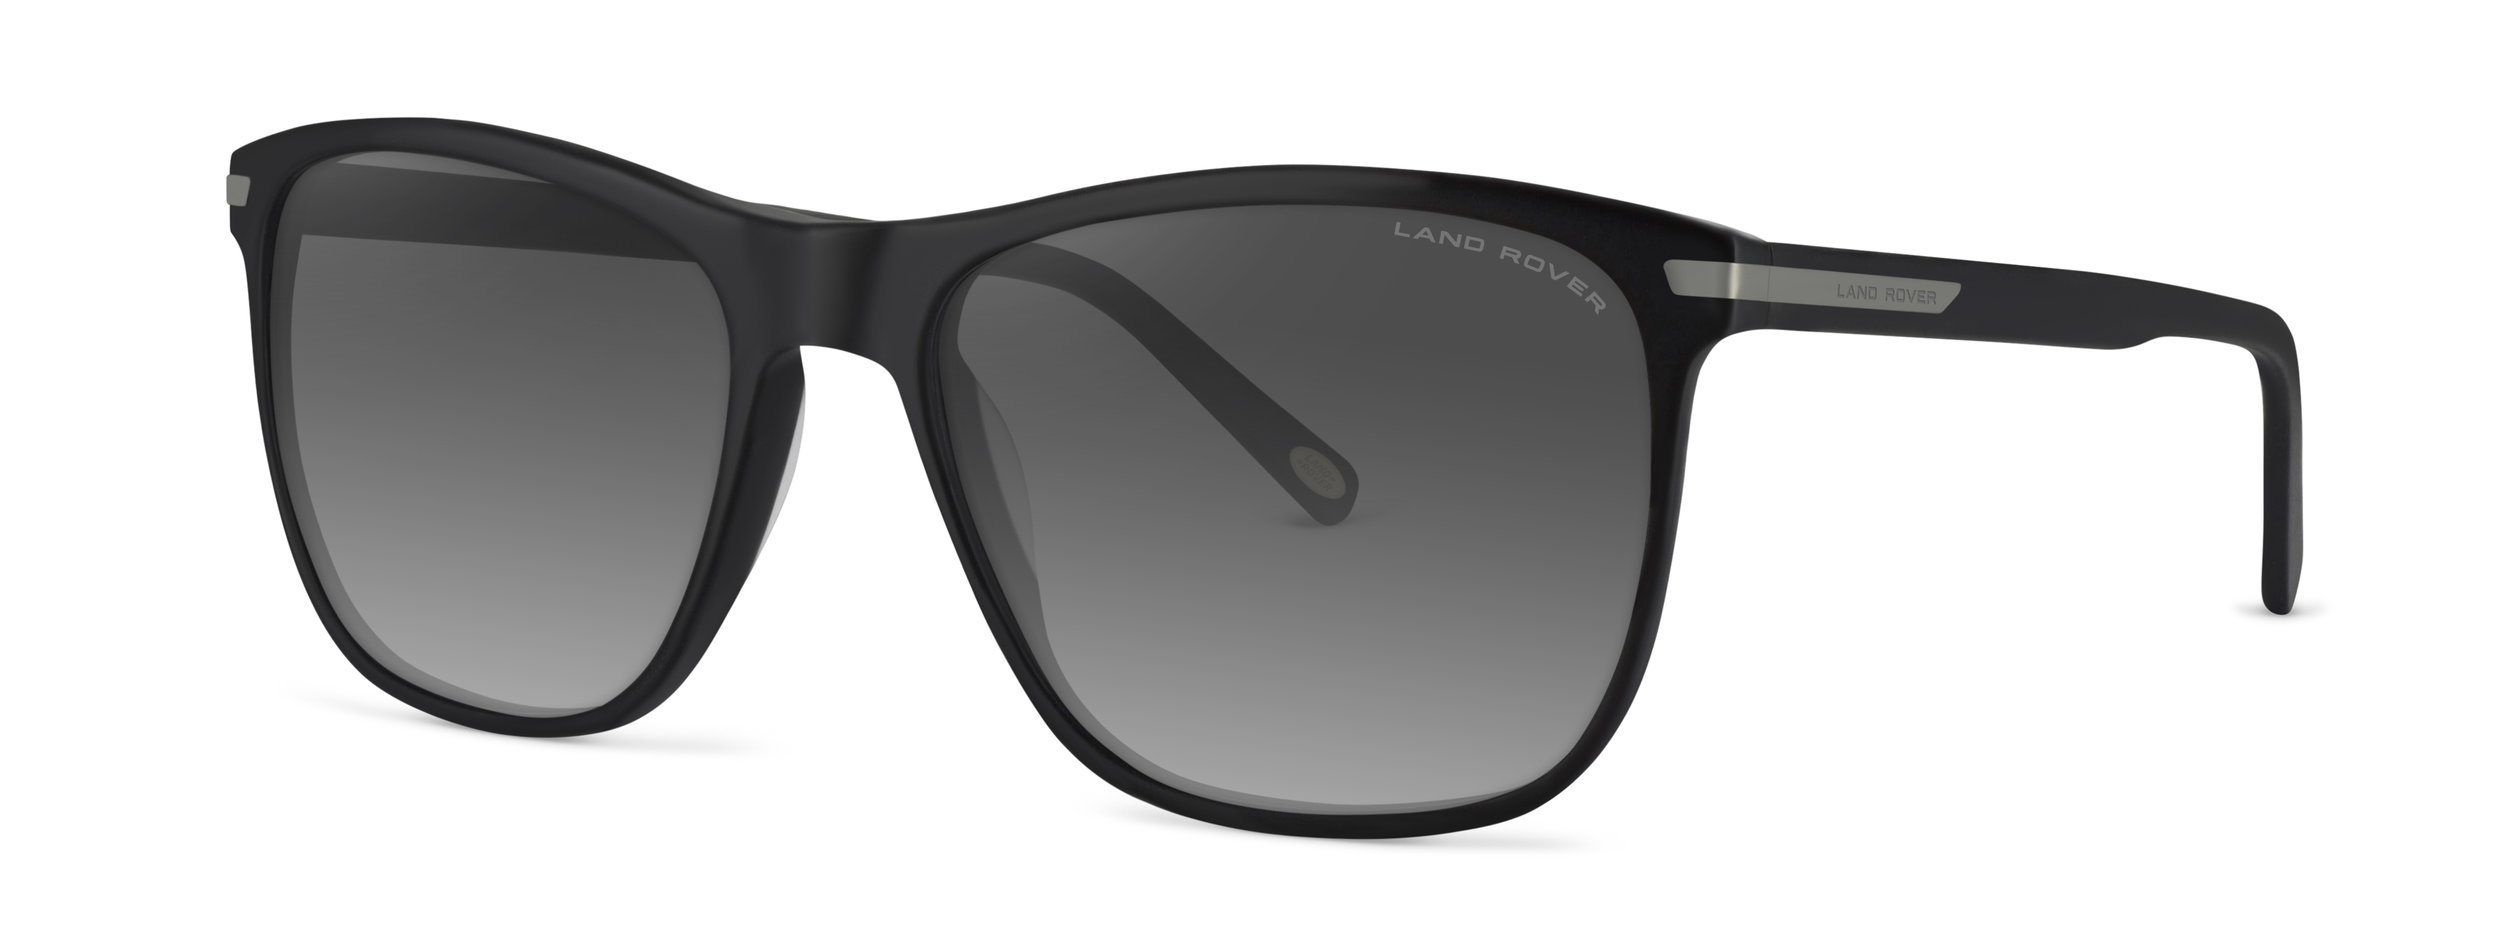 - The Fistral moves away from the aviator style, showing the diversification and diversity within the range, there really is a style for everyone in this collection. The Fistral is available in matt black or a cool matt blue for those who want to push the boundaries and stand out from the crowd.